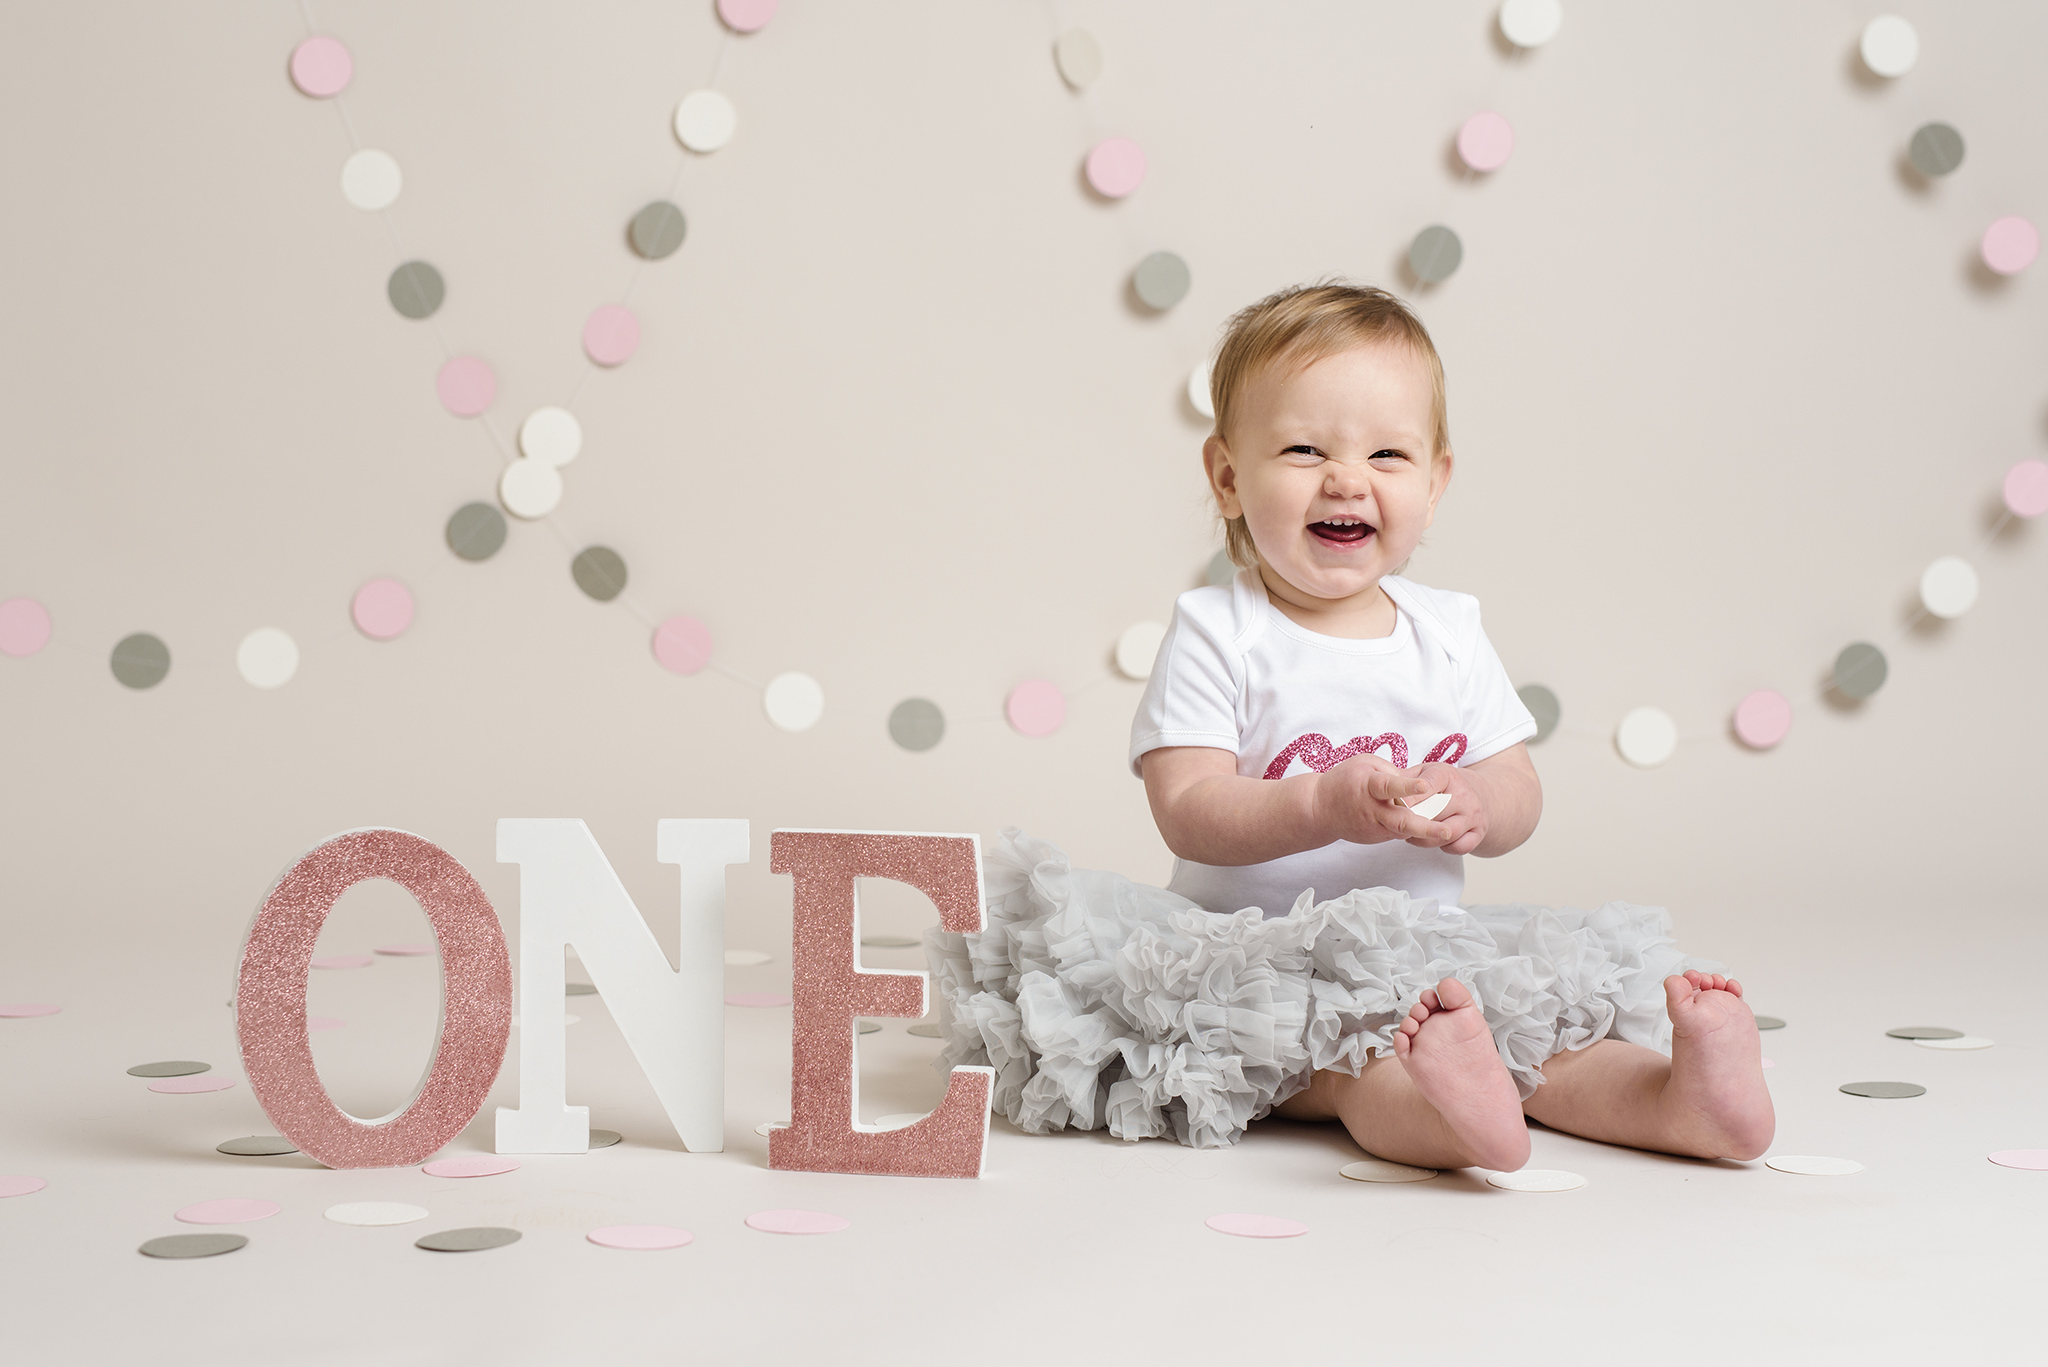 little girl laughing next to a one sign | Cake Smash Photographer Aylesbury Buckinghamshire and Thame Oxfordshire